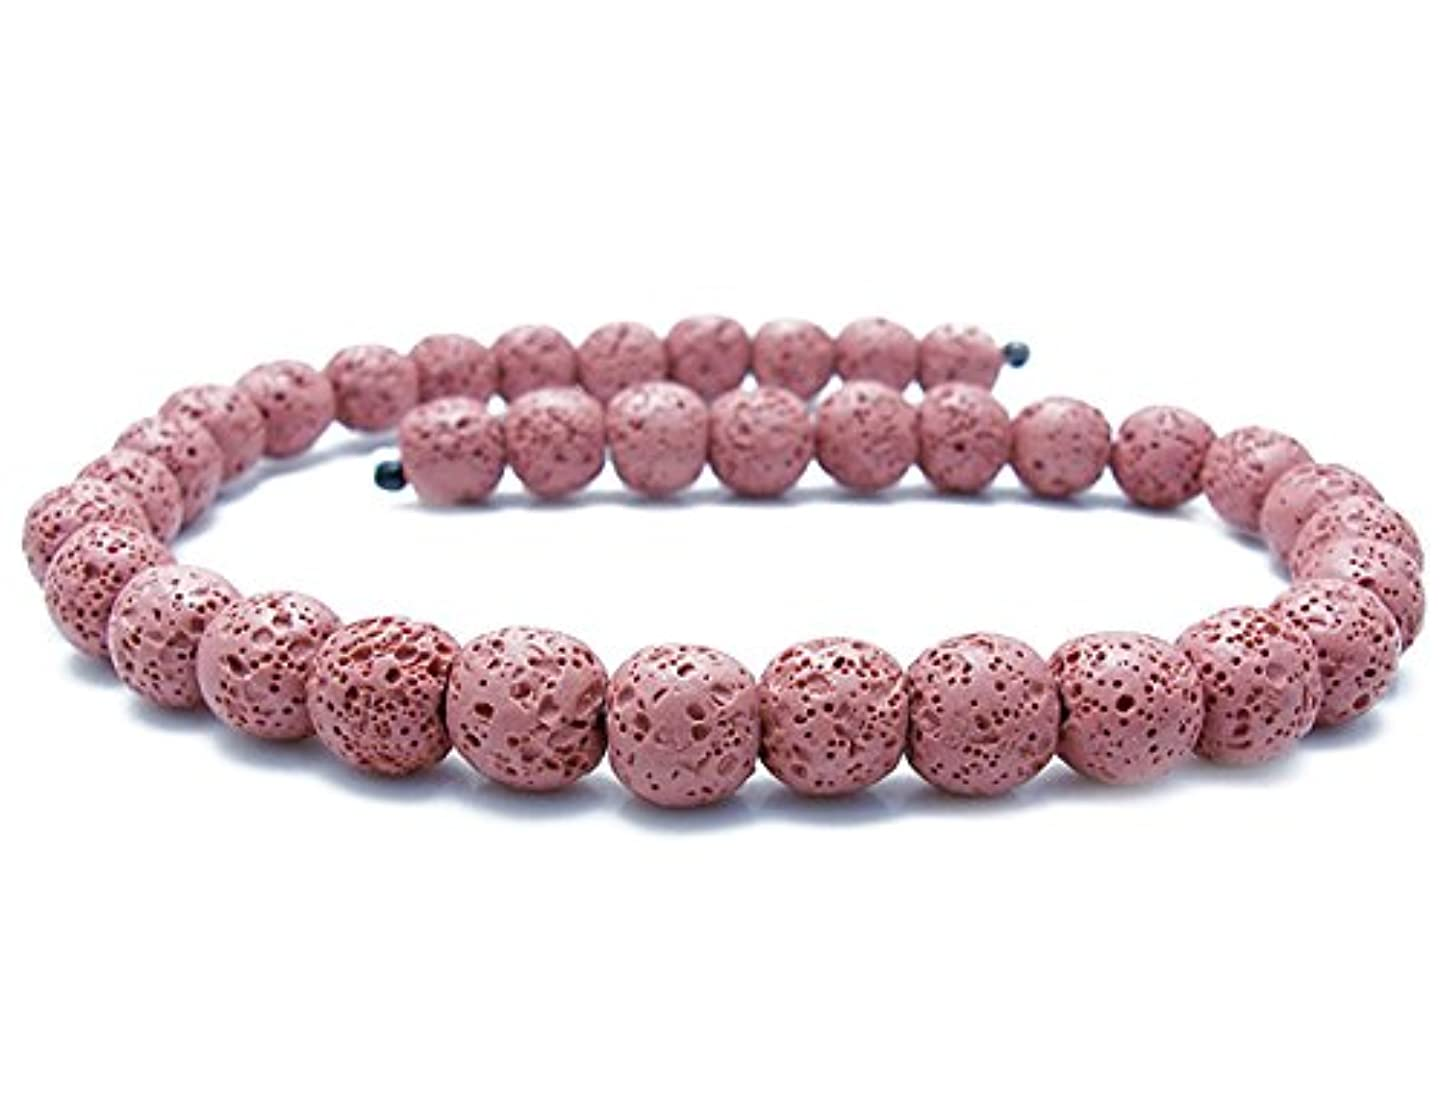 Smooth Lava Stone Loose Beads - Coloured Round Lava Rock Beads Volcanic Gemstone for DIY Handmade Jewelry Making Beaded Necklace Bracelet (Pink, 6mm)